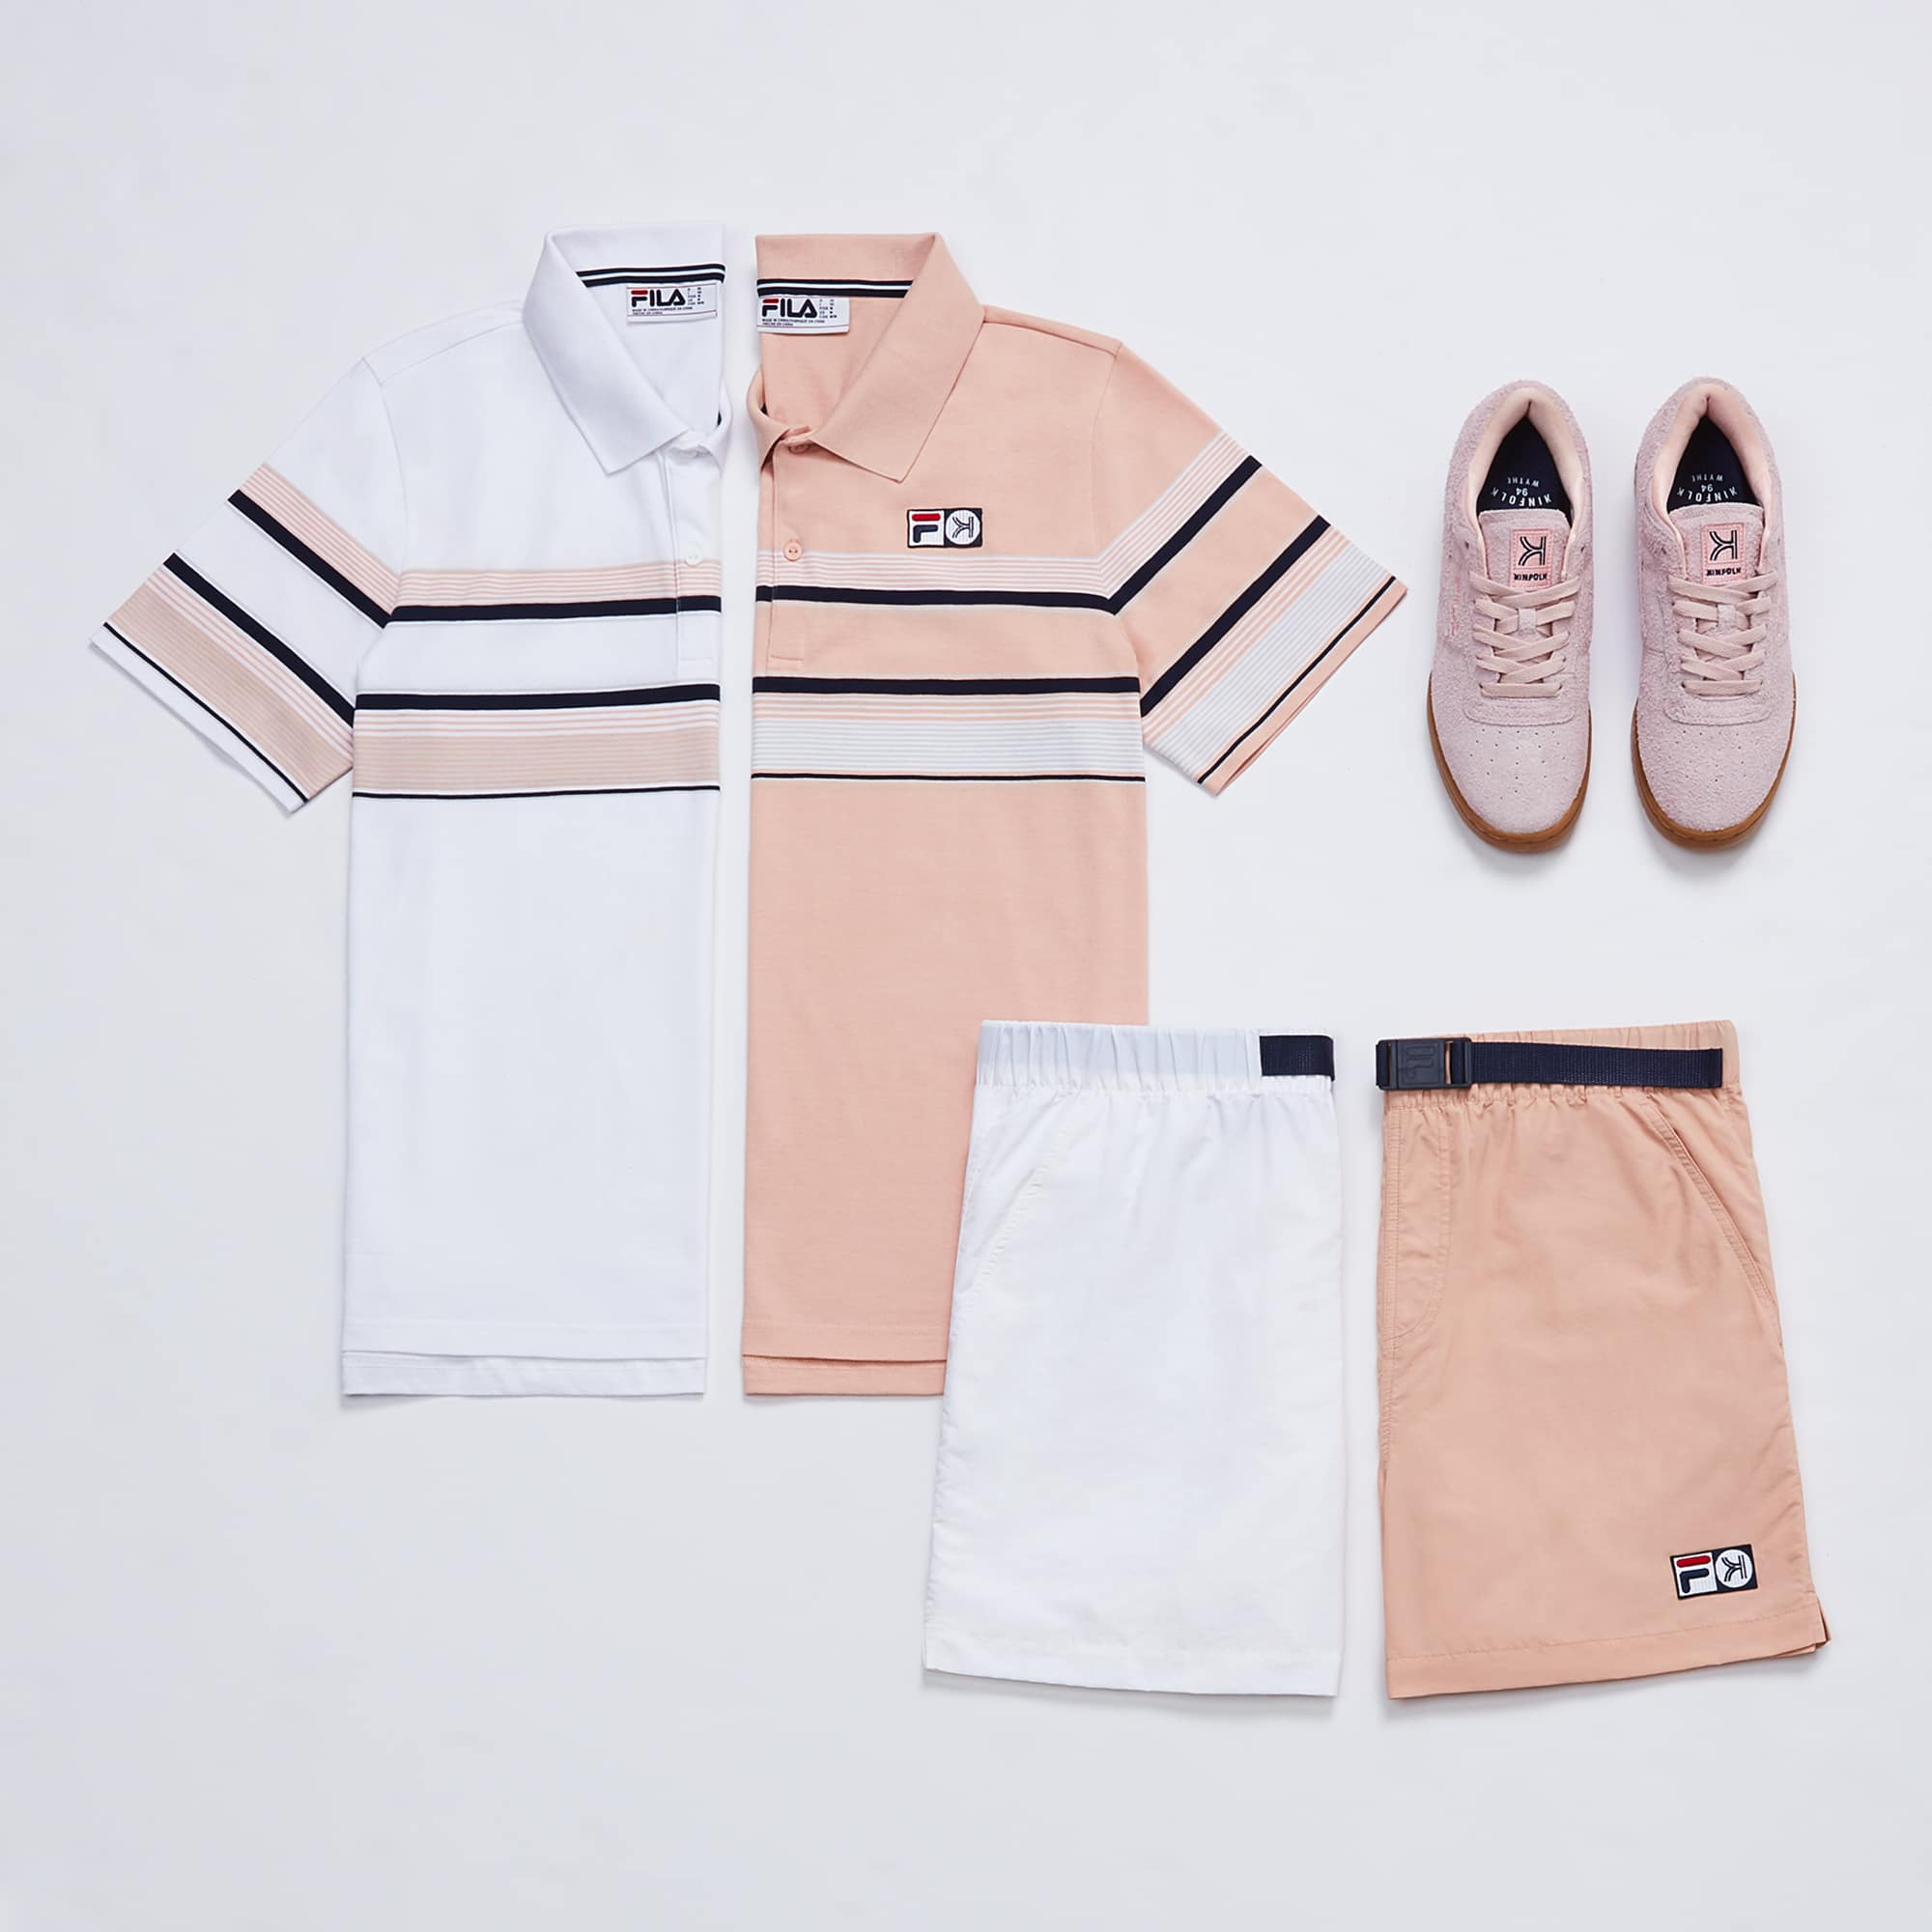 Kinfolk x Fila capsule collection